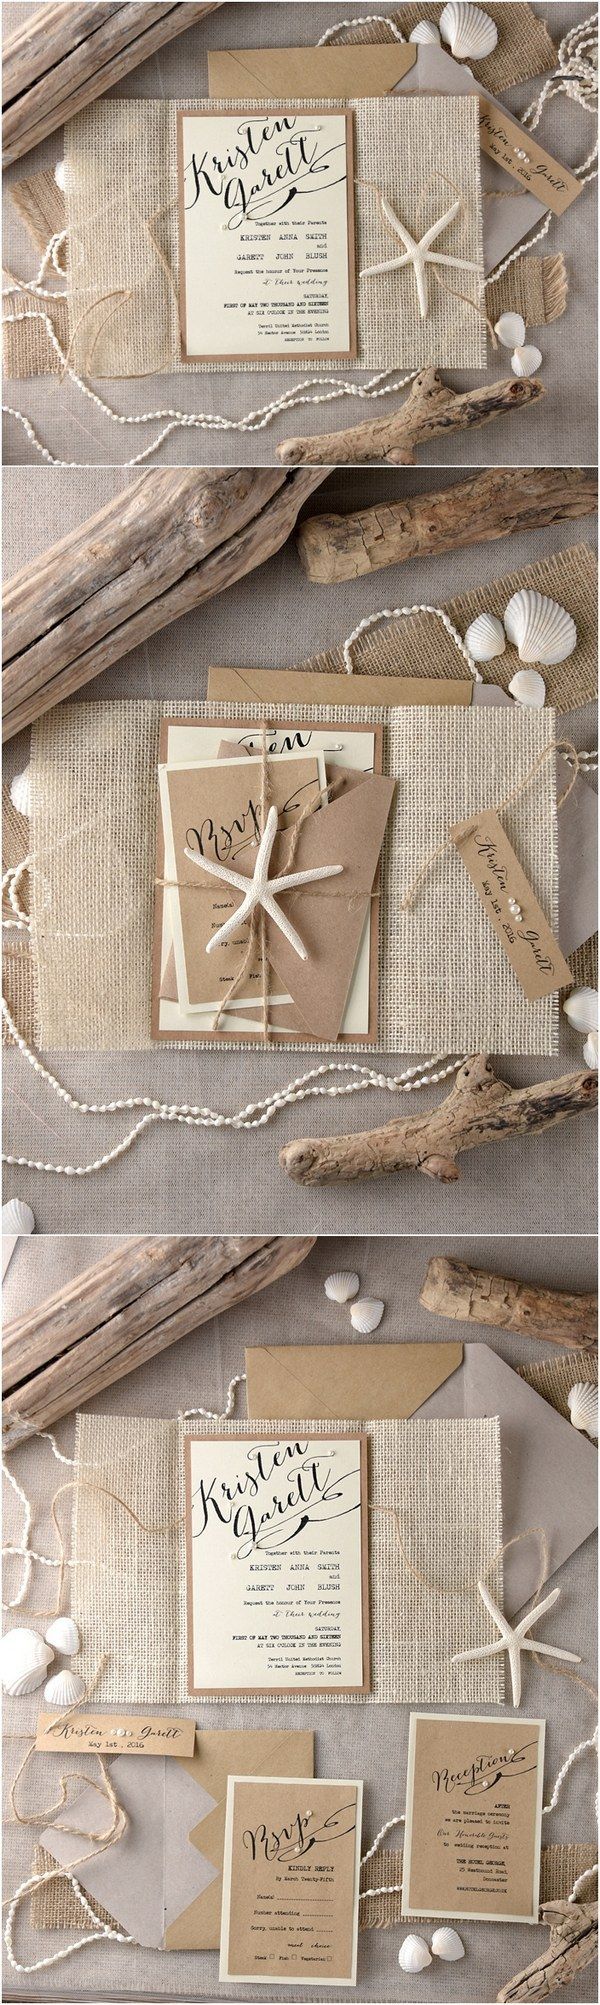 Rustic country burlap beach wedding invitations 4LOVEPolkaDots